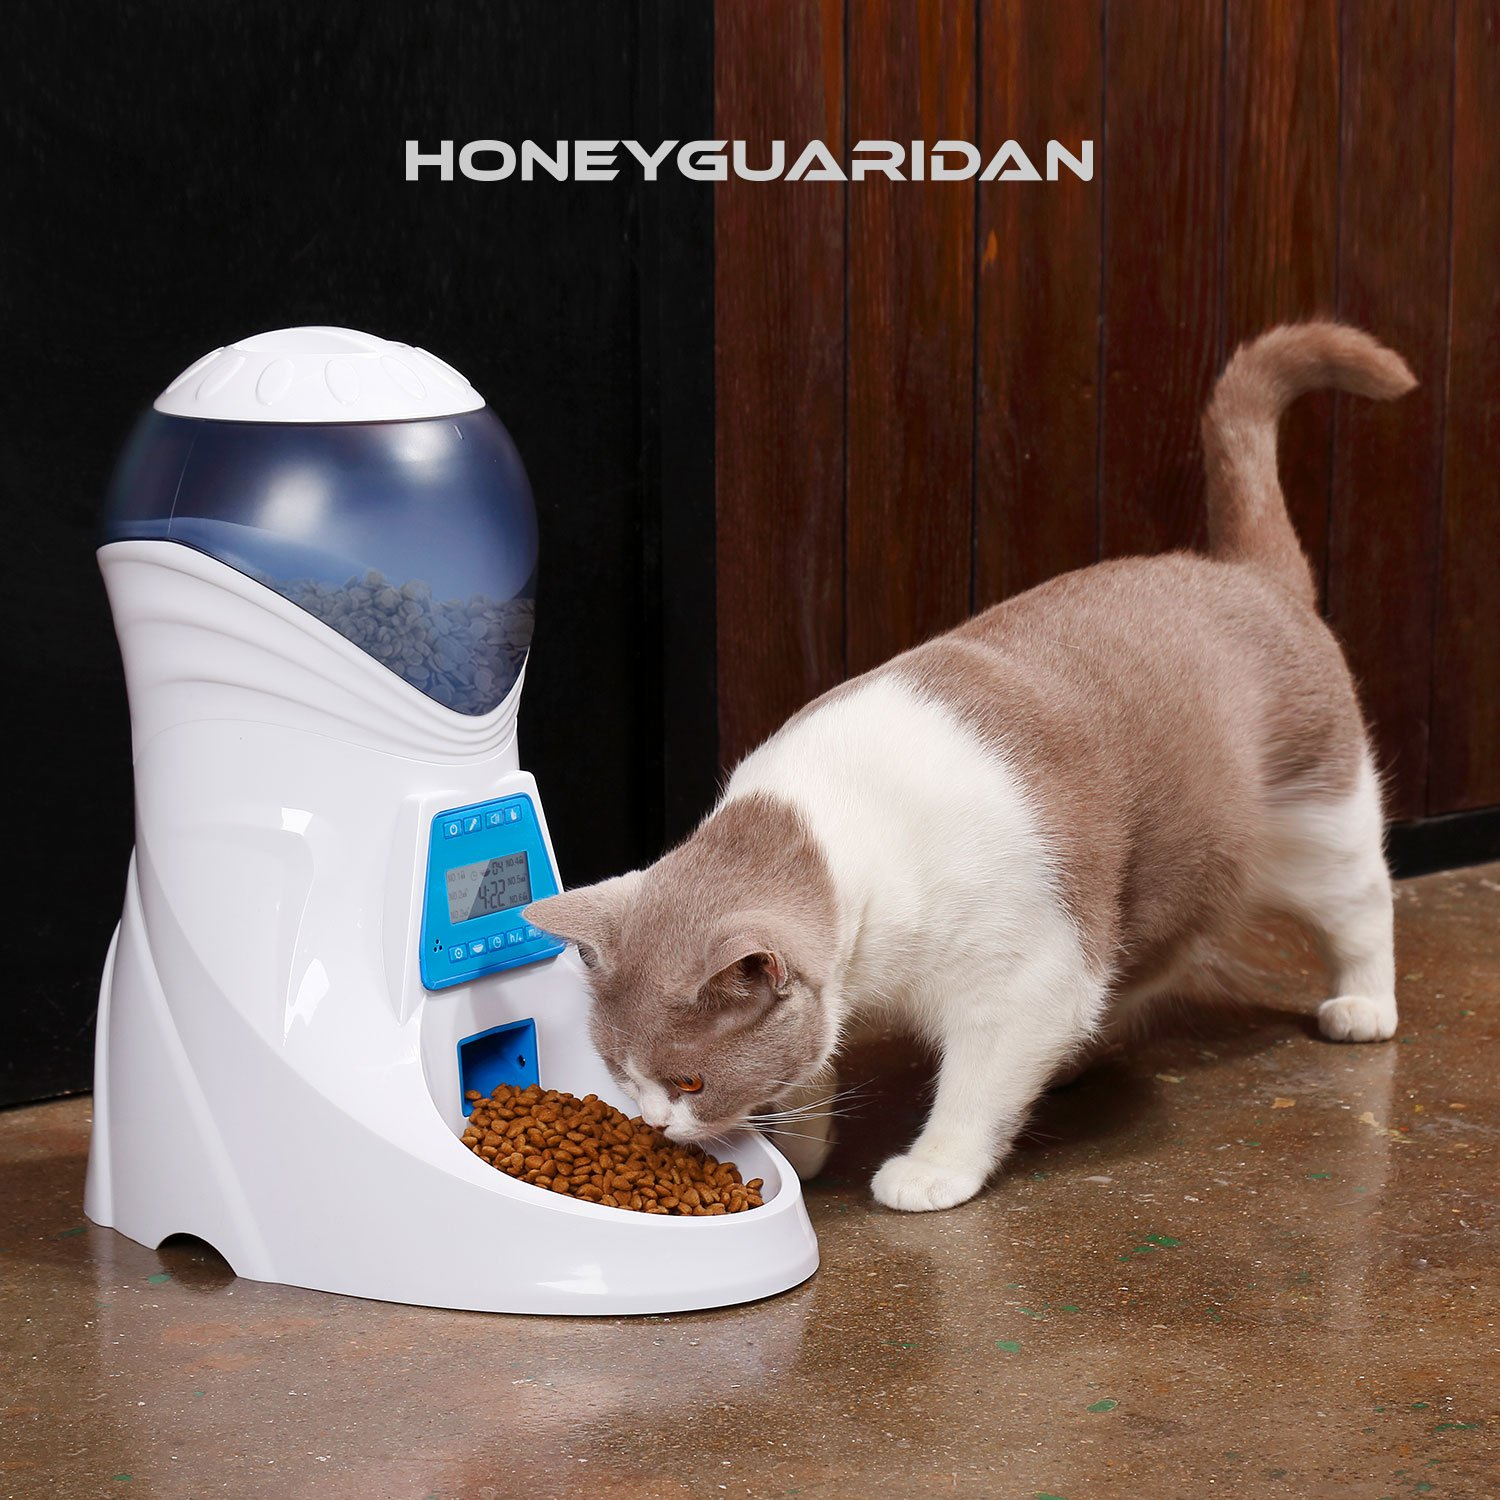 HoneyGuaridan A25 Automatic Pet Feeder Food Dispenser with Removable Food Container, Portion Control,Voice Recording and Timer Programmable, 6-Meal for Dogs (Medium and Small) and Cats & Small Animal by HoneyGuaridan (Image #10)